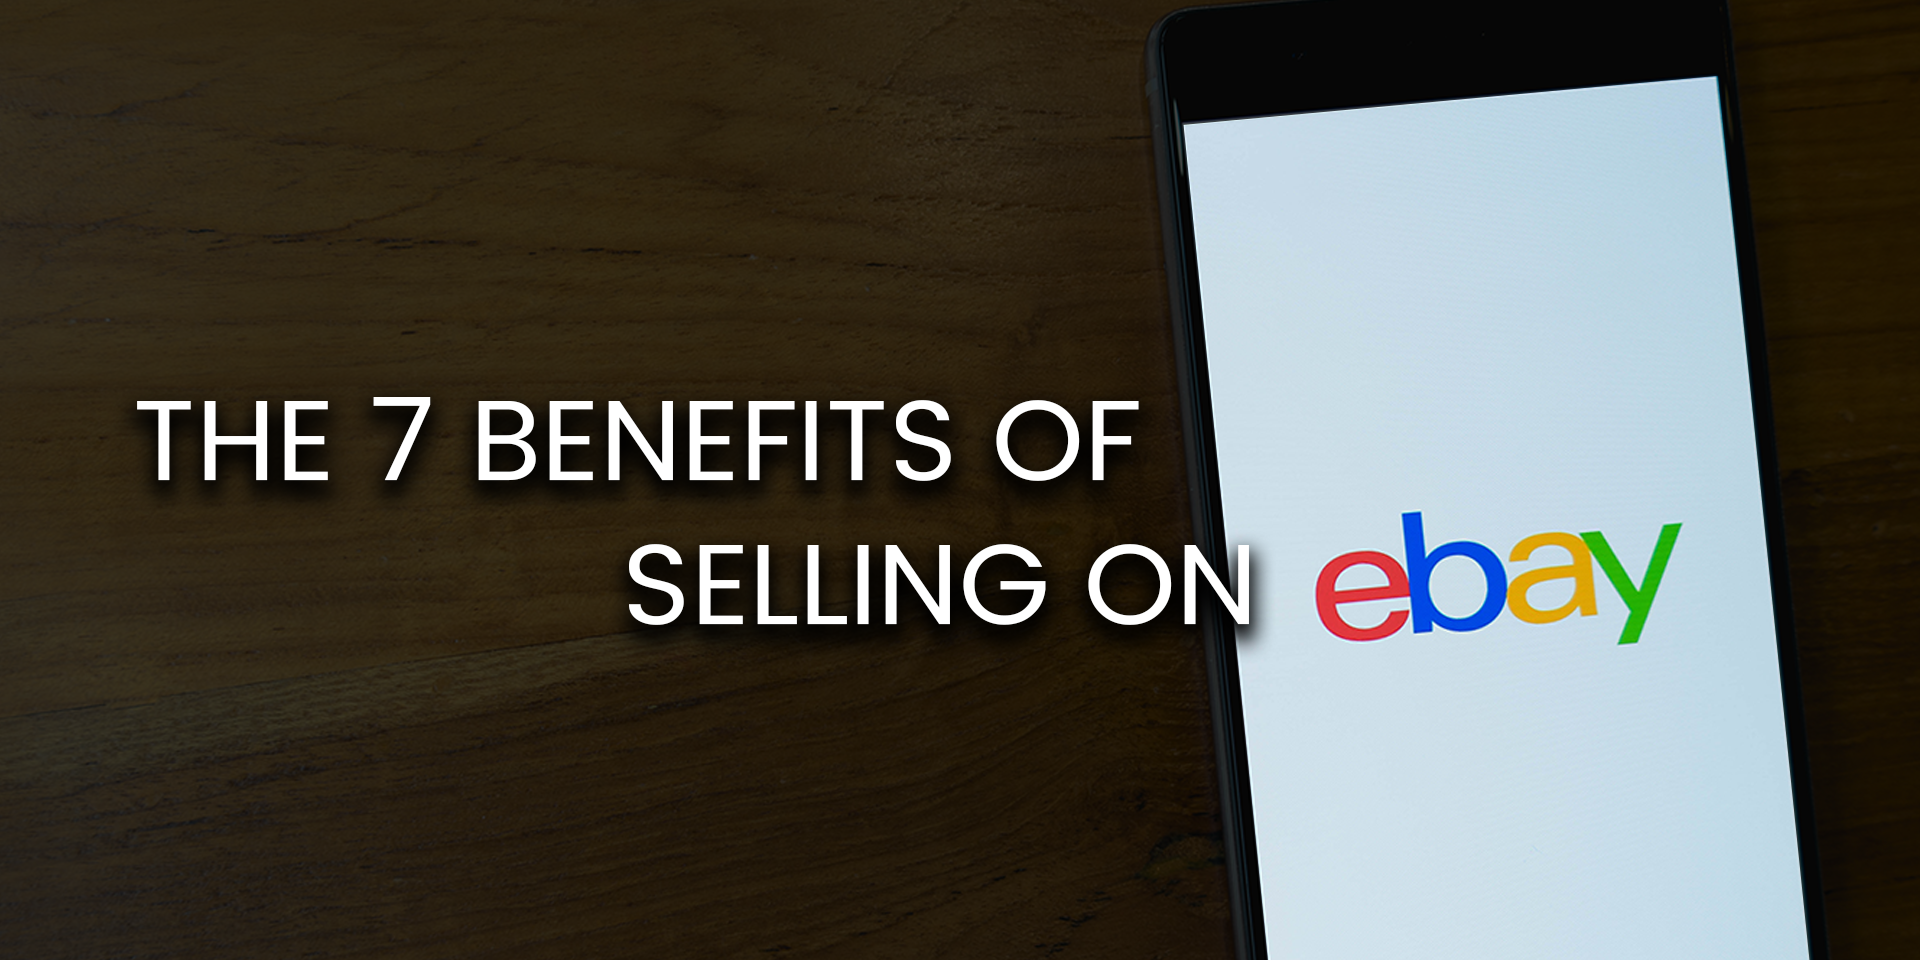 The 7 Benefits of Selling on eBay